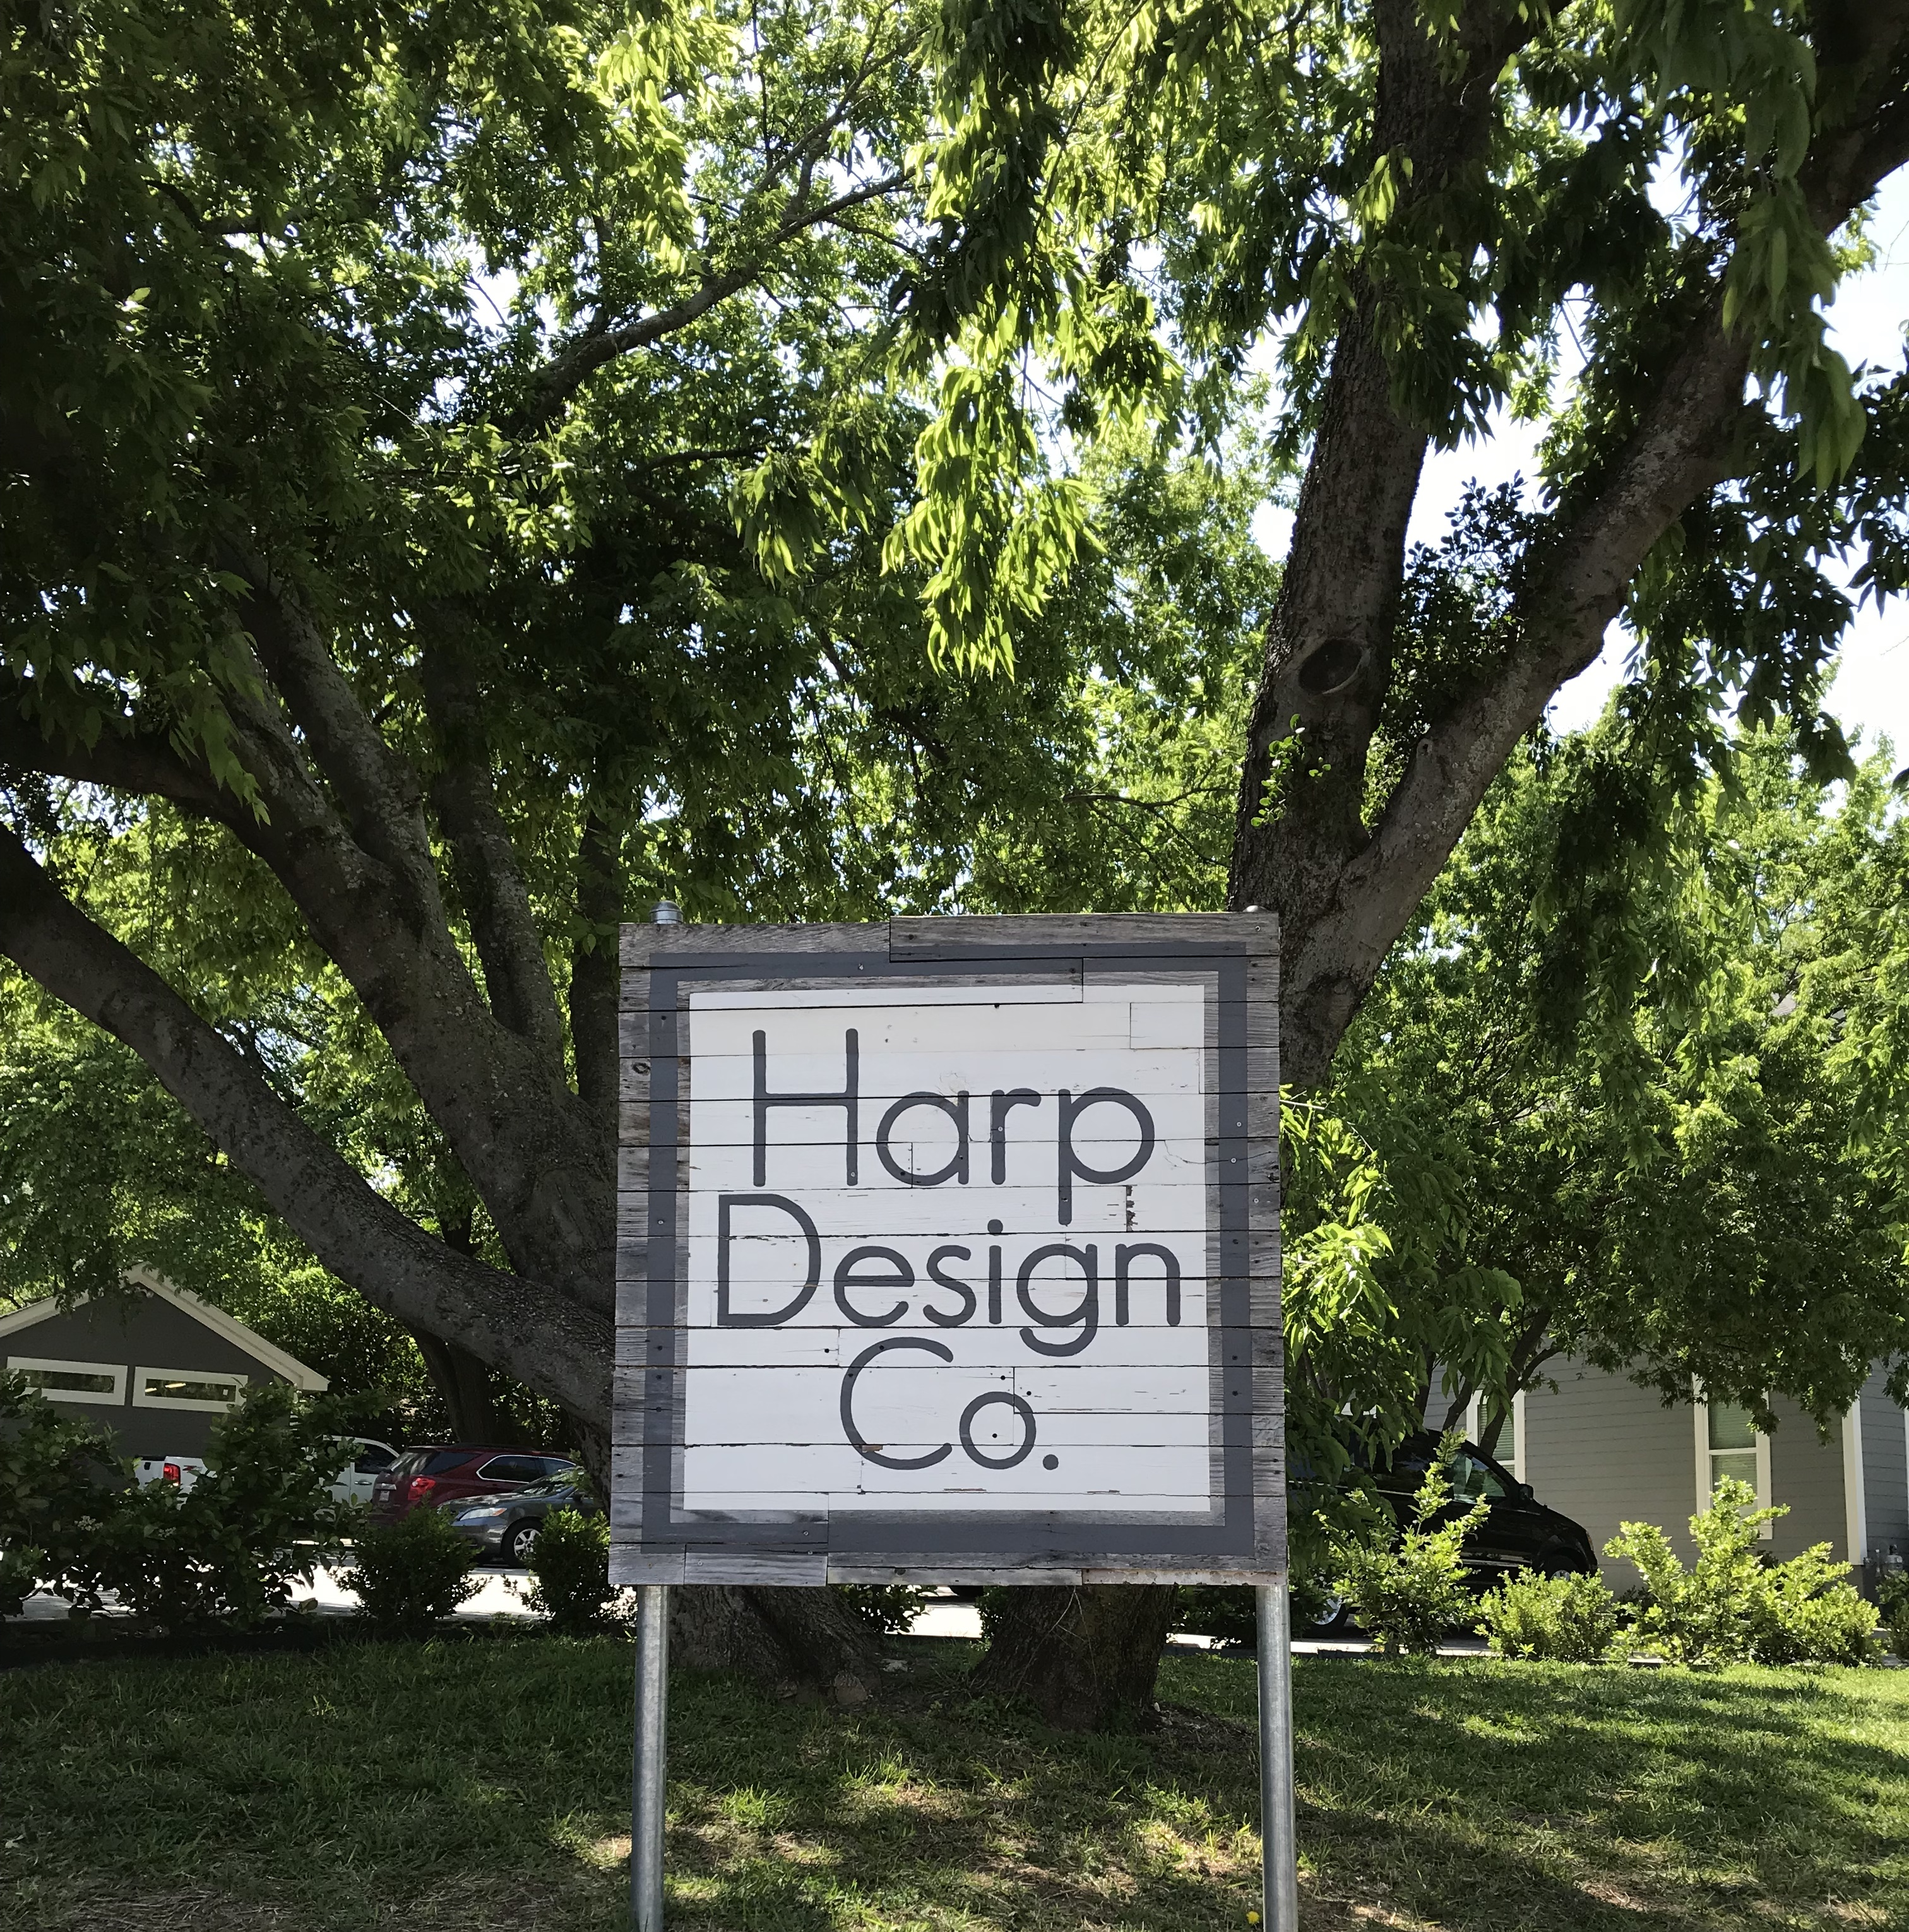 Visiting Harp Design Co. | Sarah Shaeffer